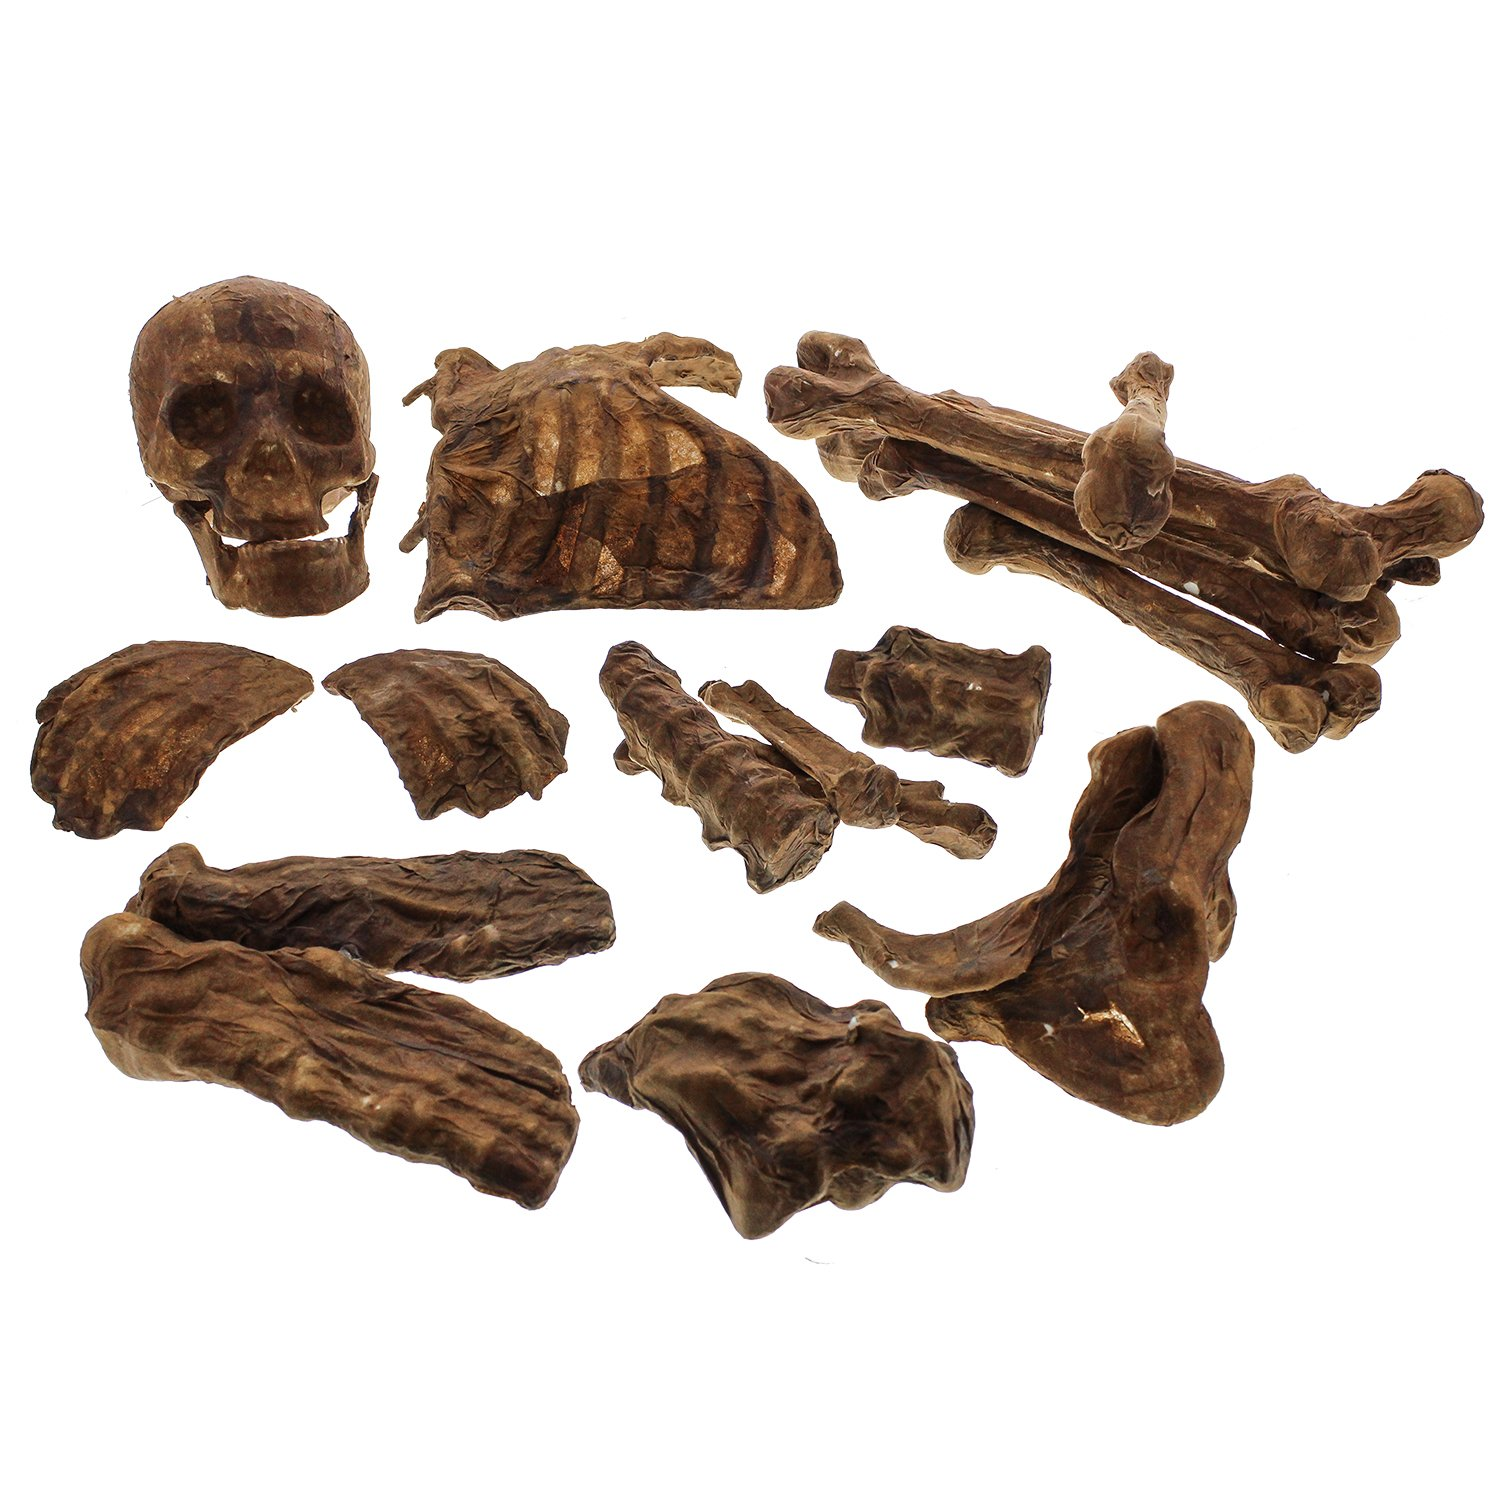 Halloween Haunters 20 Piece Bag of Plastic Life Size Burnt Rotten Flesh Mummy Skeleton Skull Bones Prop Decoration - Scary Graveyard Human Realistic Corpse Body Parts Set - Hands, Feet, Arms, Legs